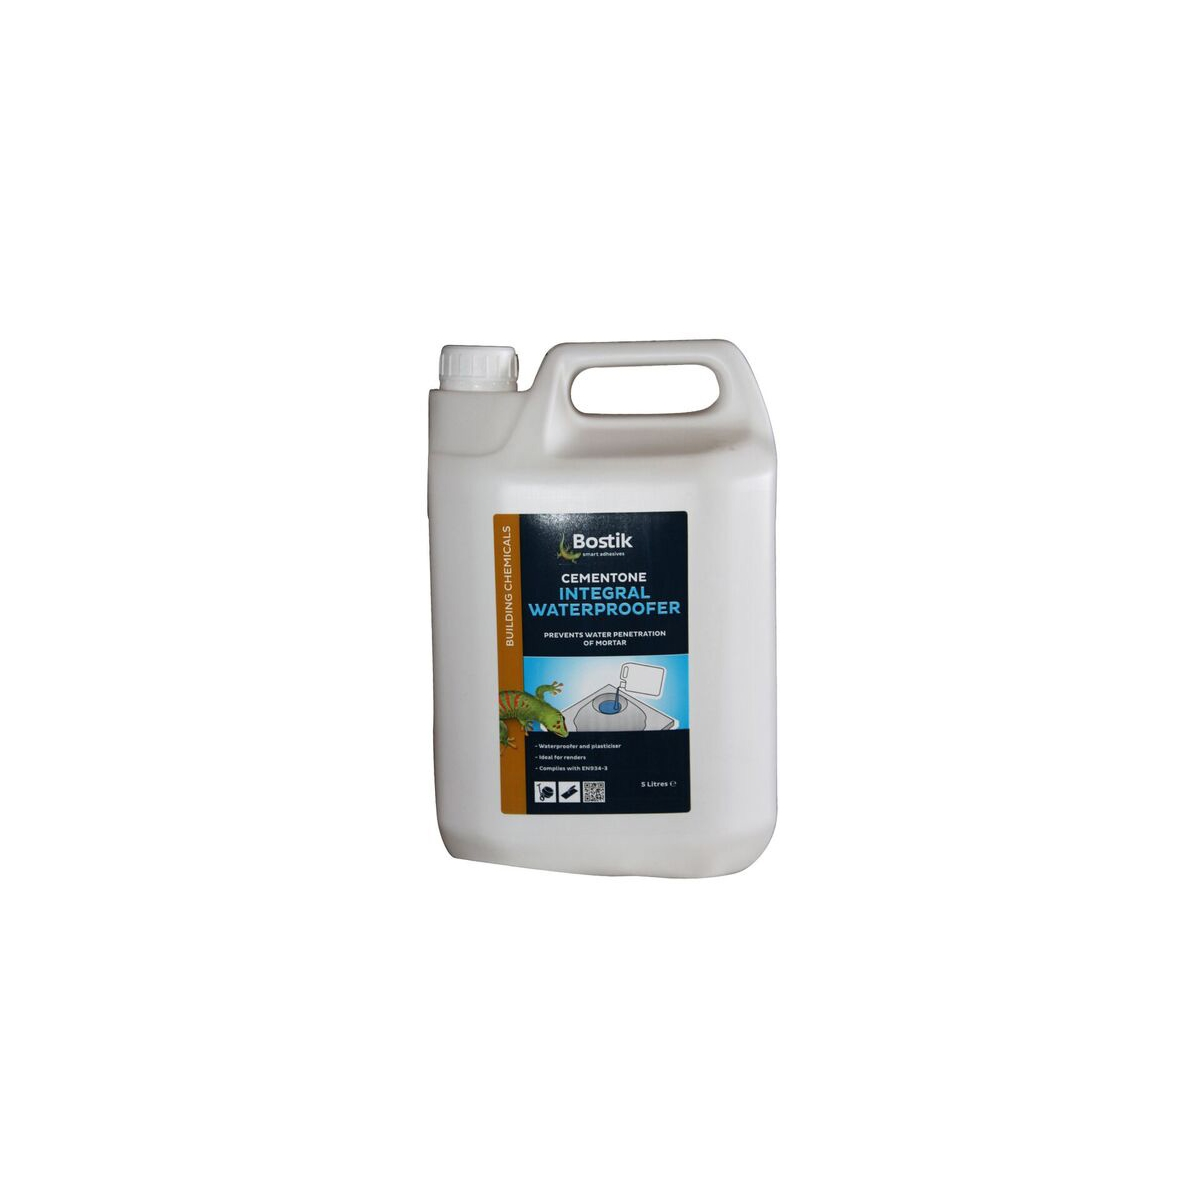 CEMENTONE WATERPROOFER 5 LTR  30812493